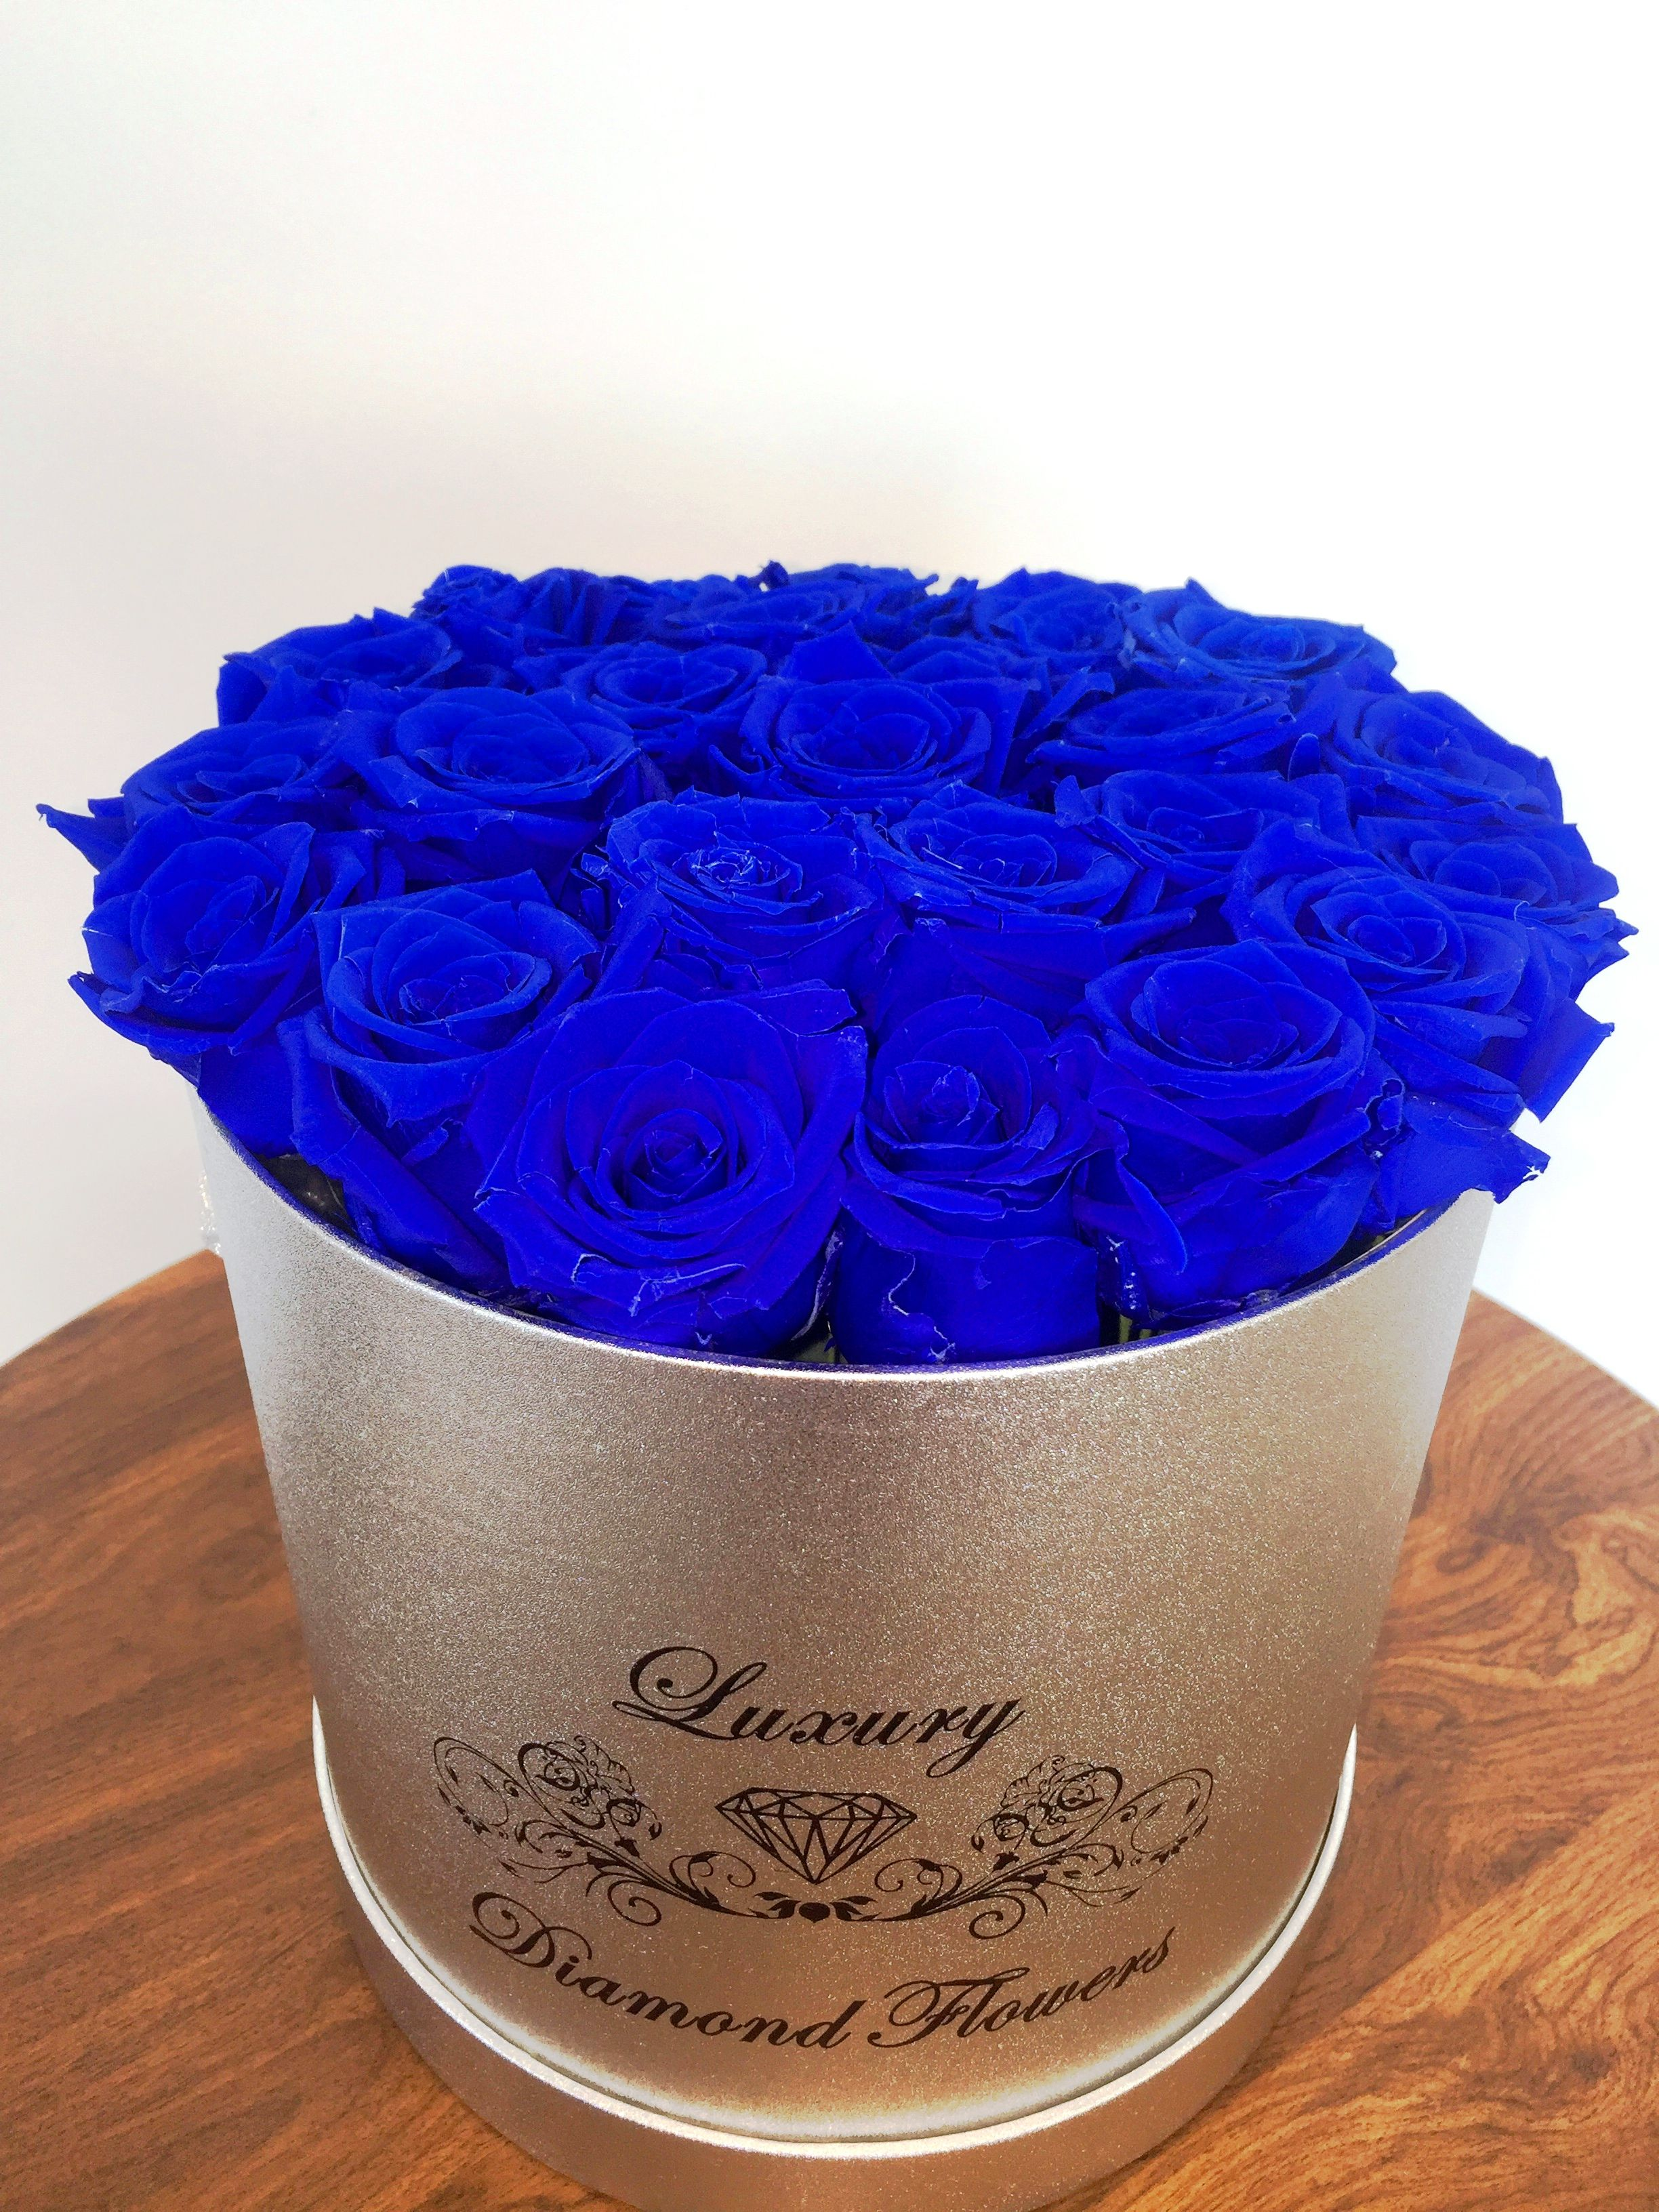 Blue Roses In Hat Box Delivery In Miami Los Angeles New York By Floral Shop In Downtown Brickell Miami How To Preserve Flowers Flowers Los Angeles Floral Shop